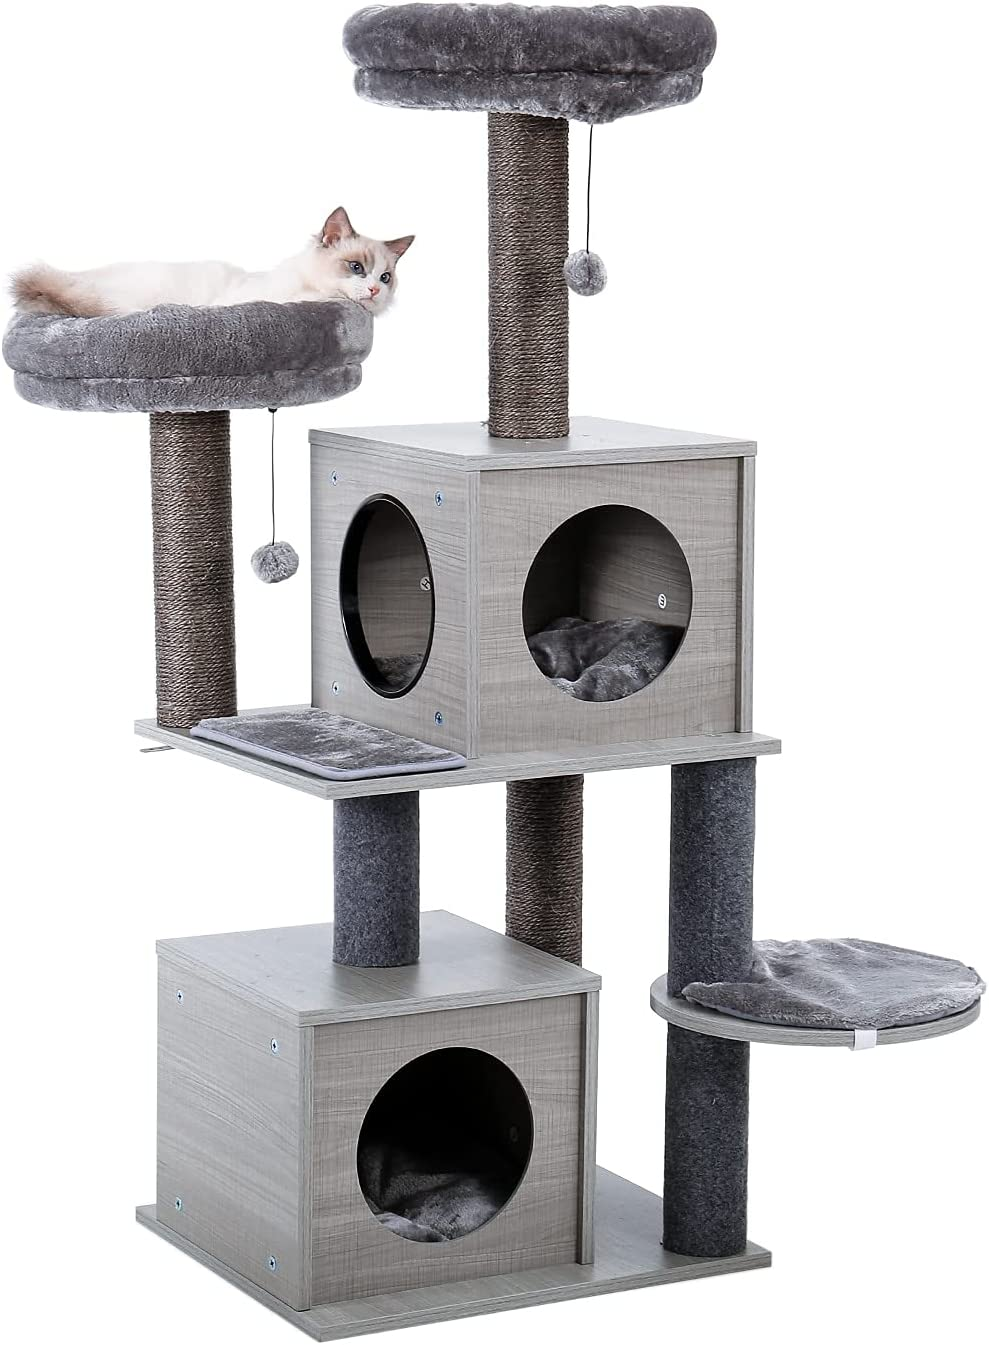 DACHENZI Cat Tree House Bombing new work Condo A surprise price is realized Playground Entertainment Perch Sta